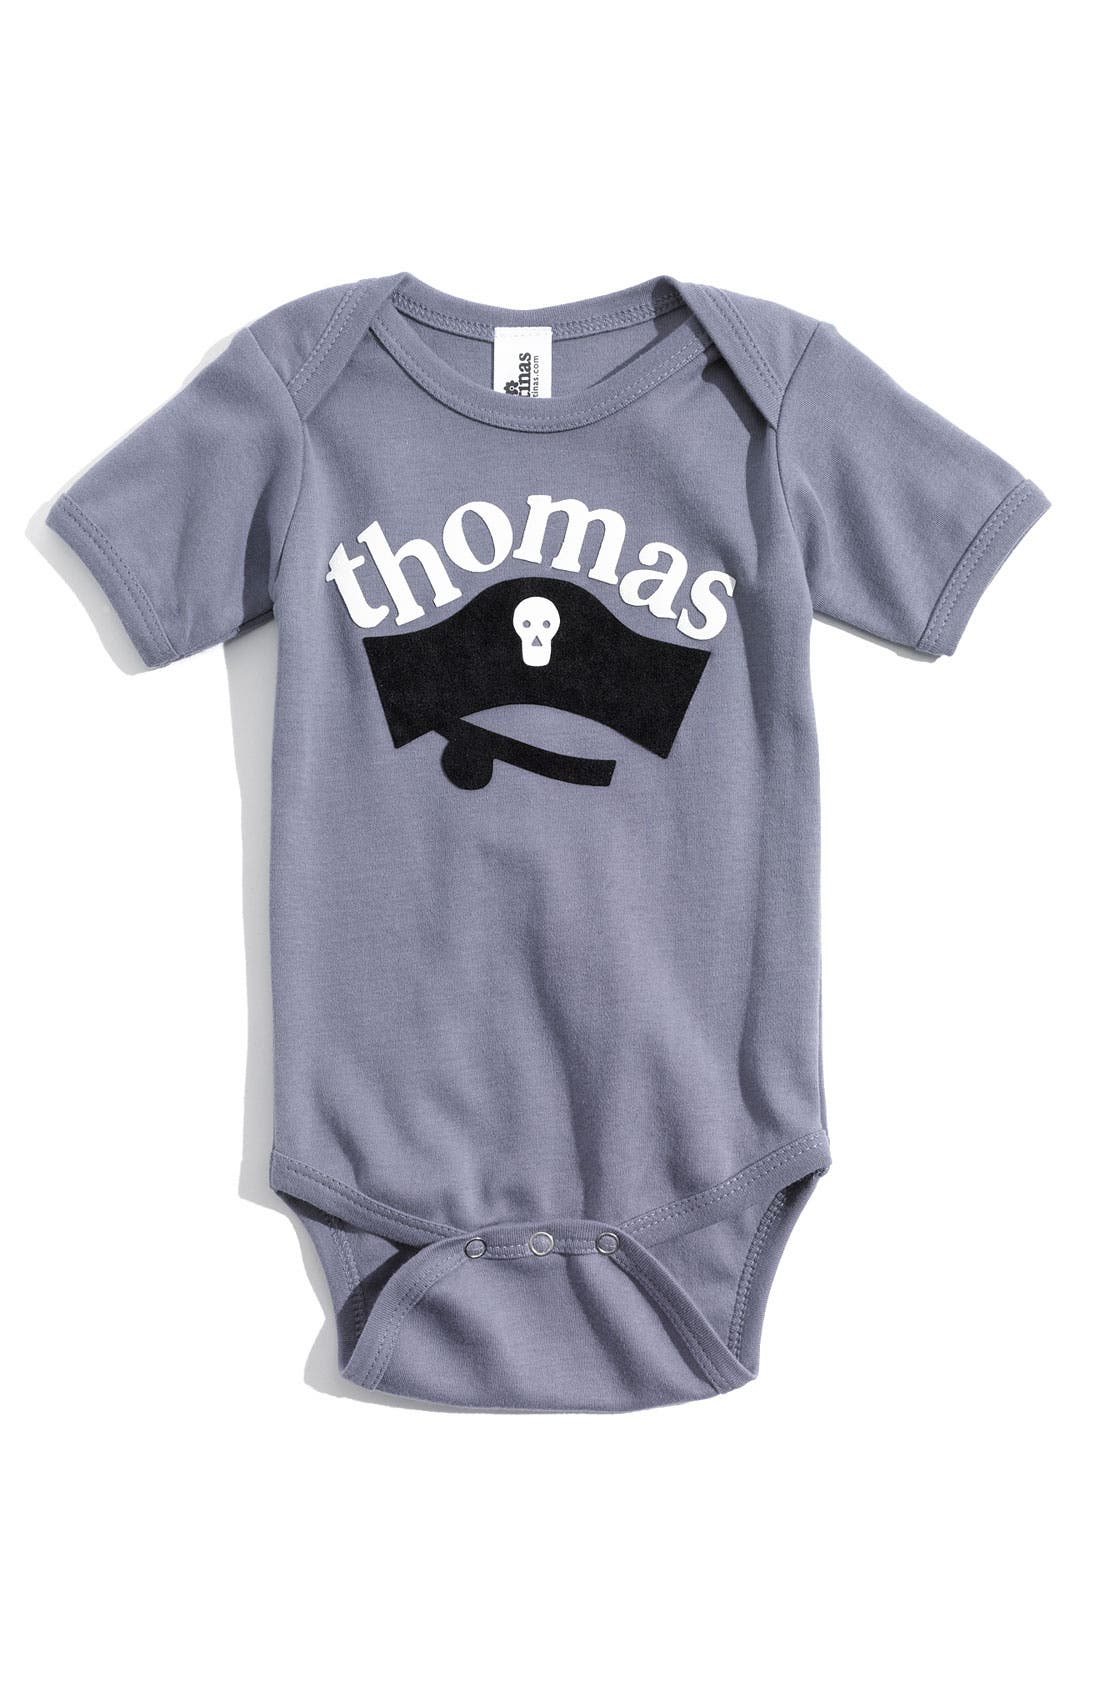 Main Image - Two Tinas Personalized Bodysuit (Baby)